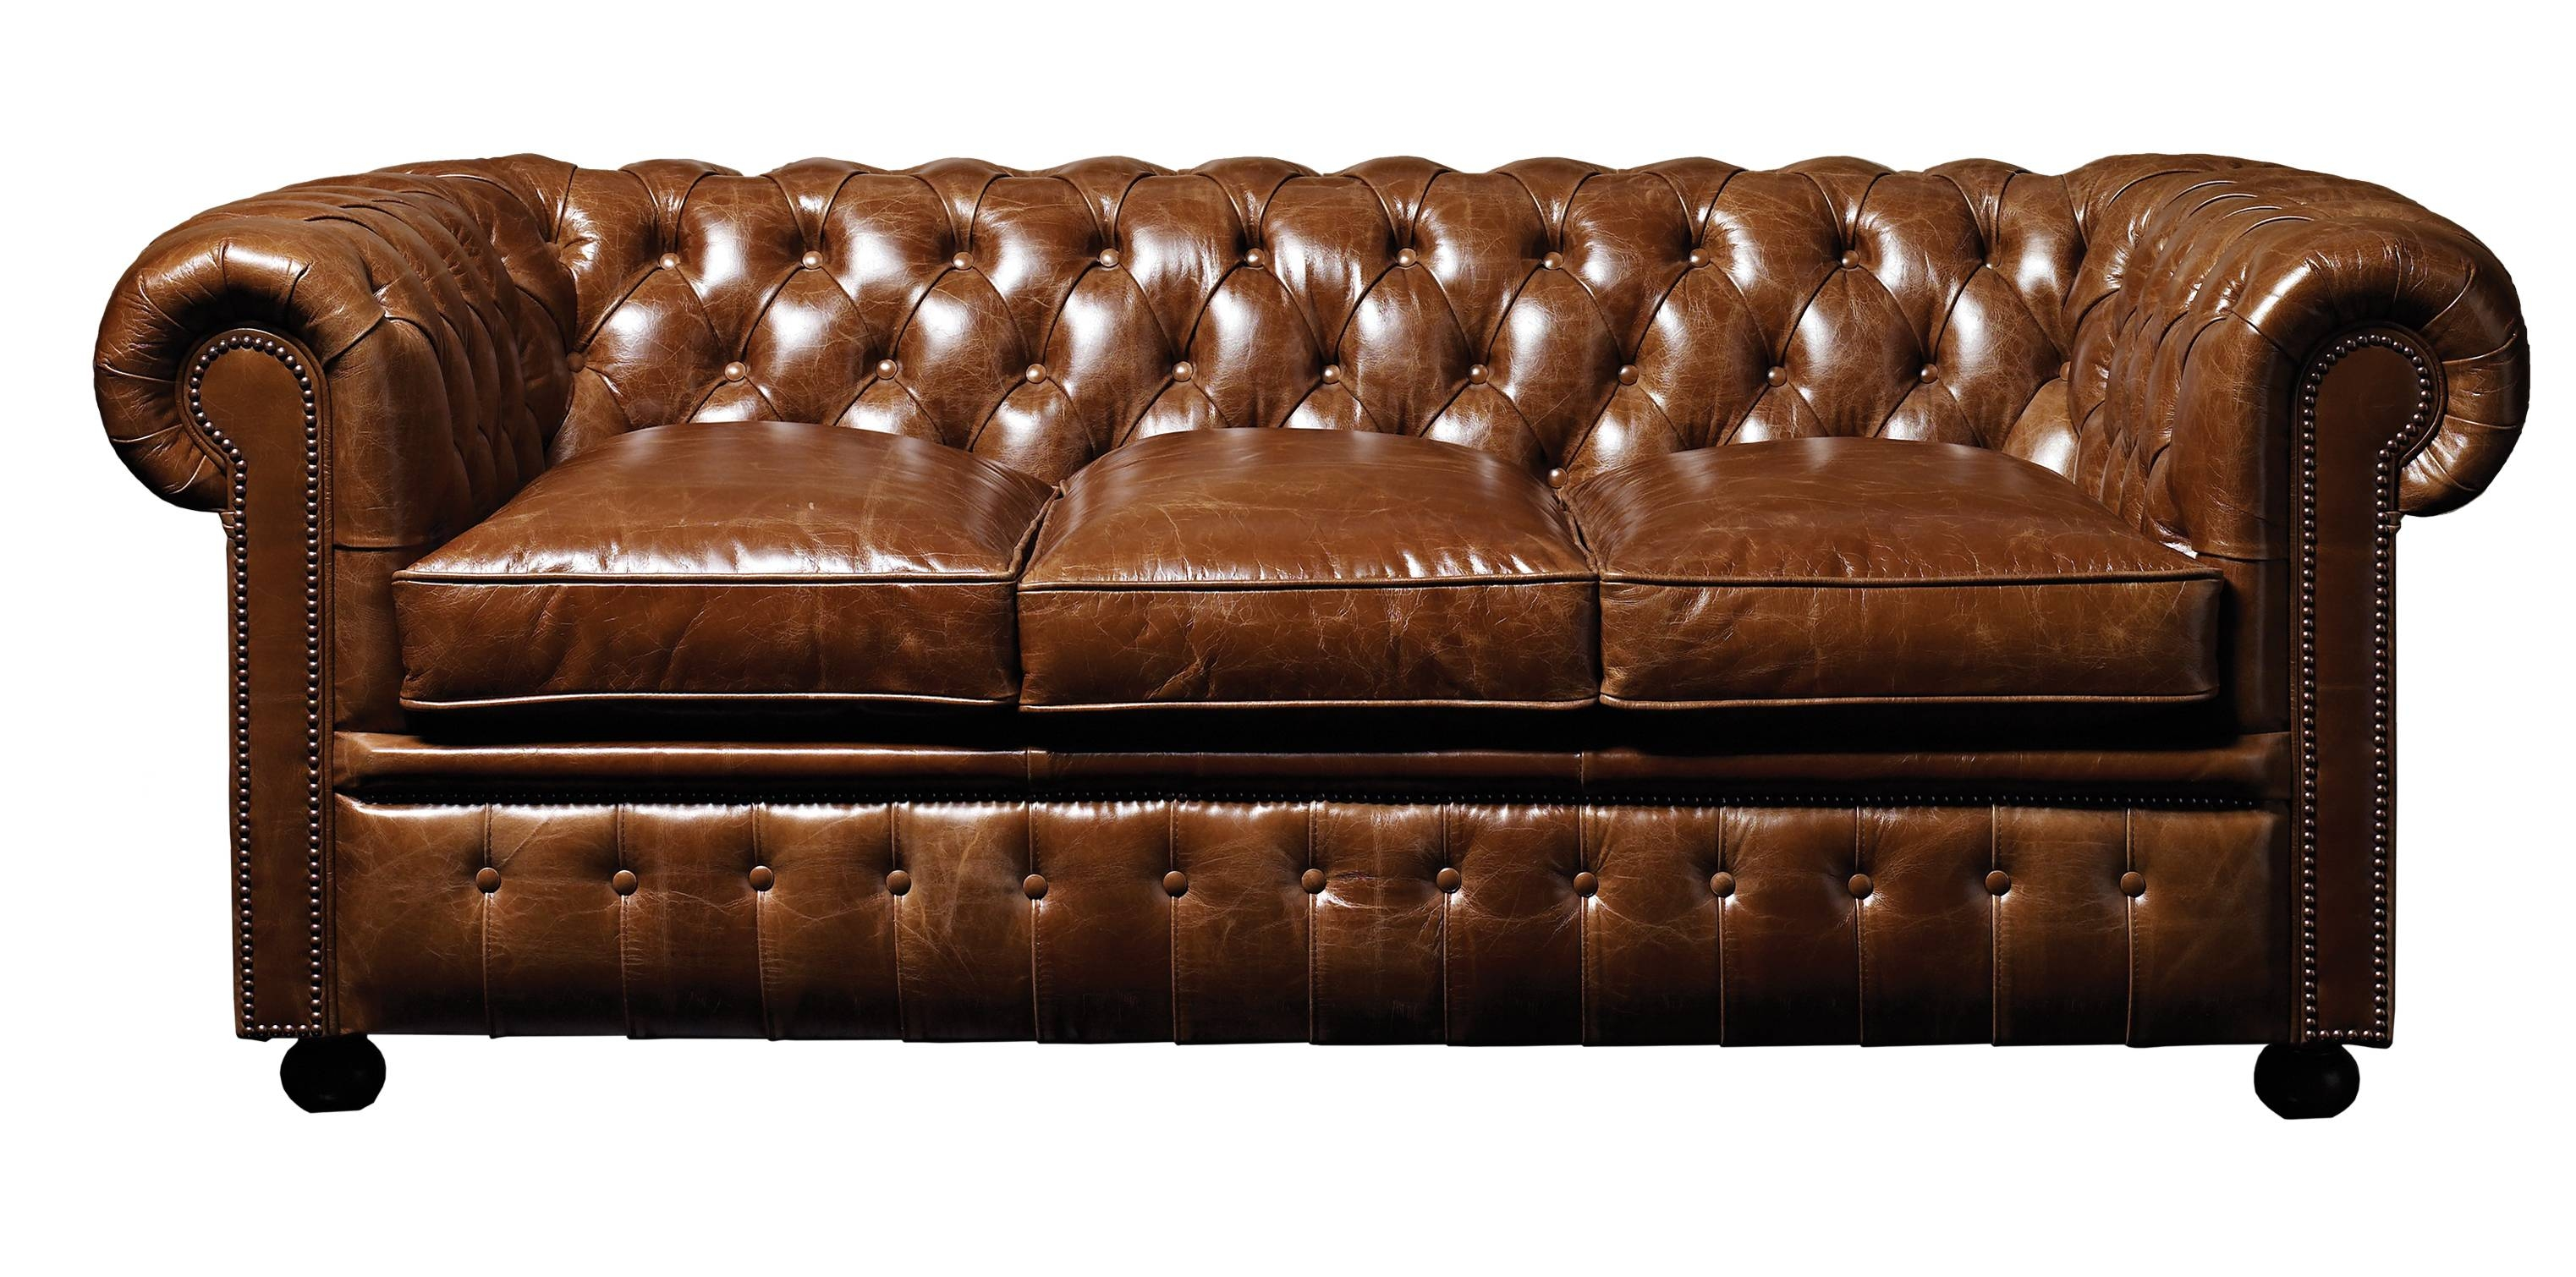 Exciting Design Modern Chesterfield Sofas. Home Furniture. Kopyok with regard to Brown Leather Tufted Sofas (Image 6 of 15)